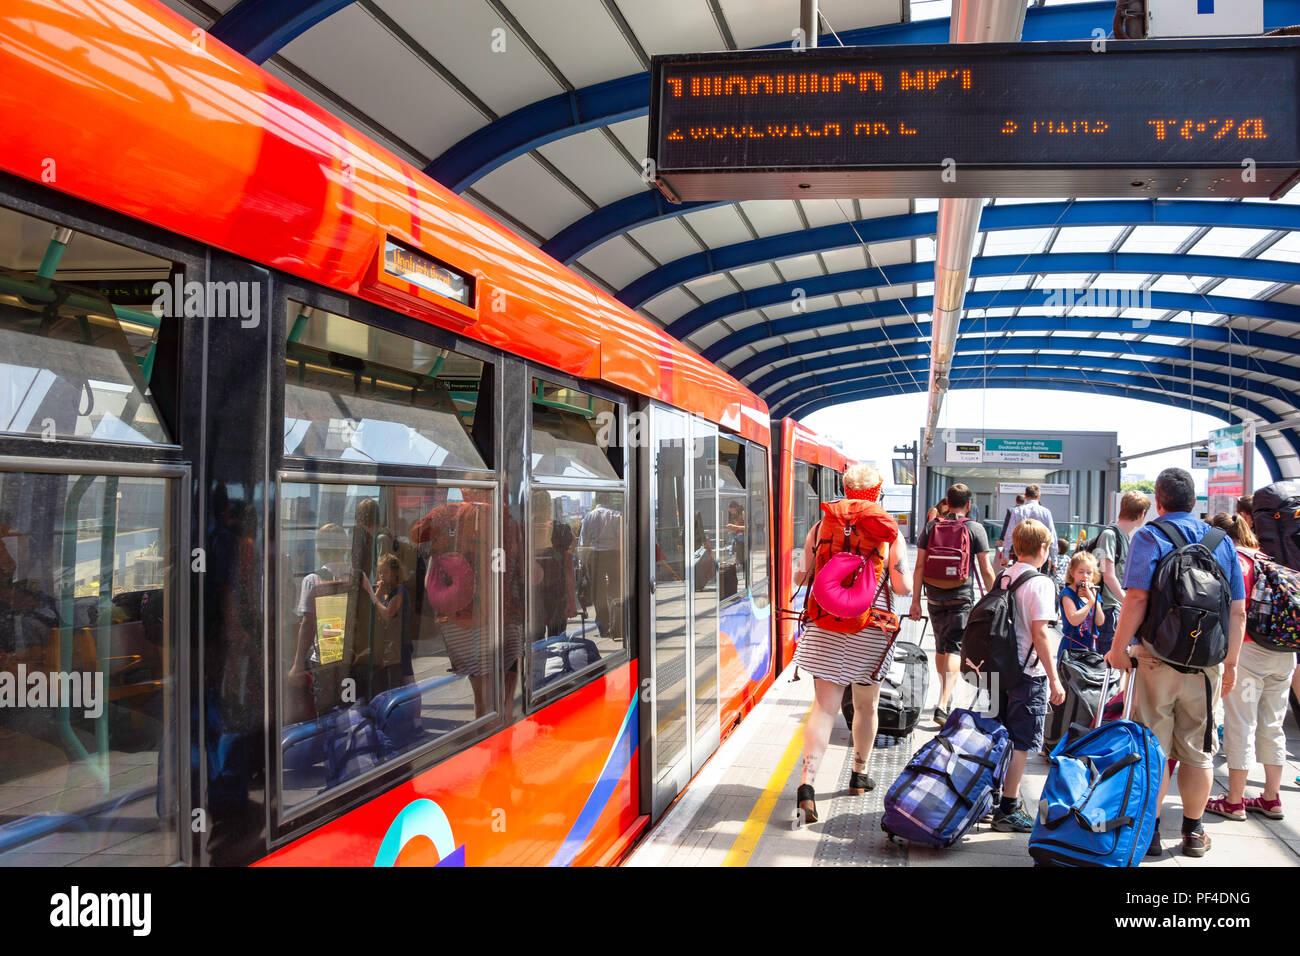 London City Airport DLR station, Silvertown, London Borough of Newham, Greater London, England, United Kingdom - Stock Image